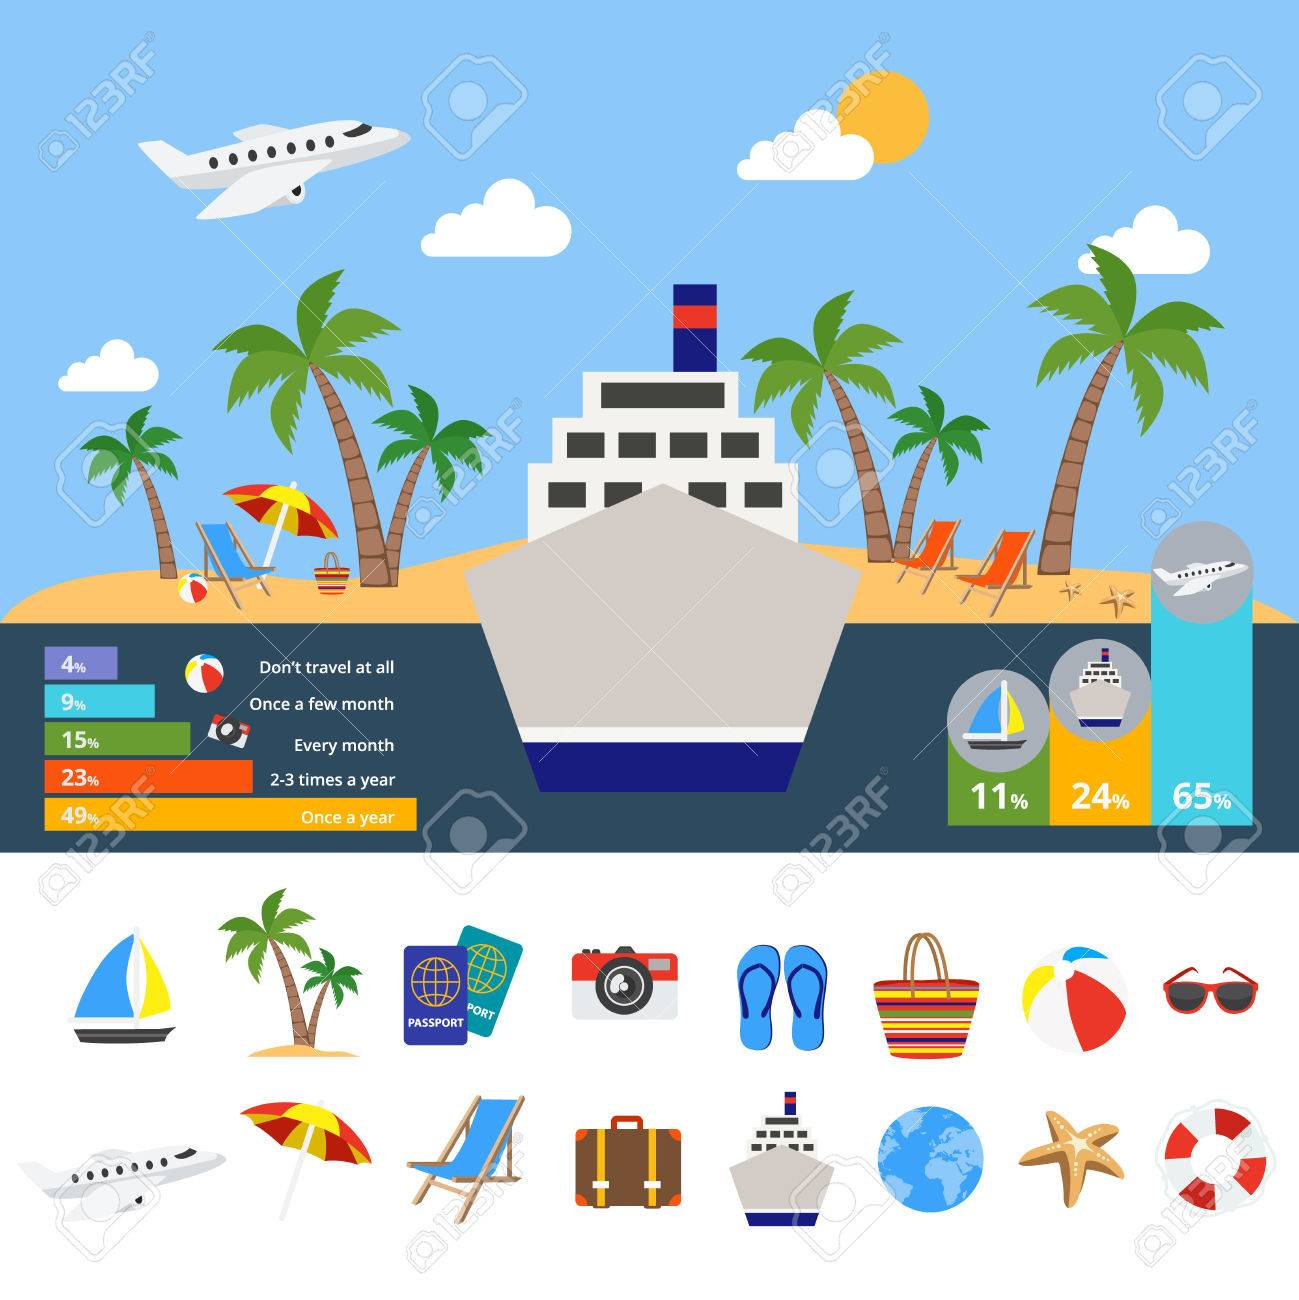 cruise ship diagram how to set a formal table for dinner world of tourism infographics with in center symbol vector global travel statistics diagrams illustration